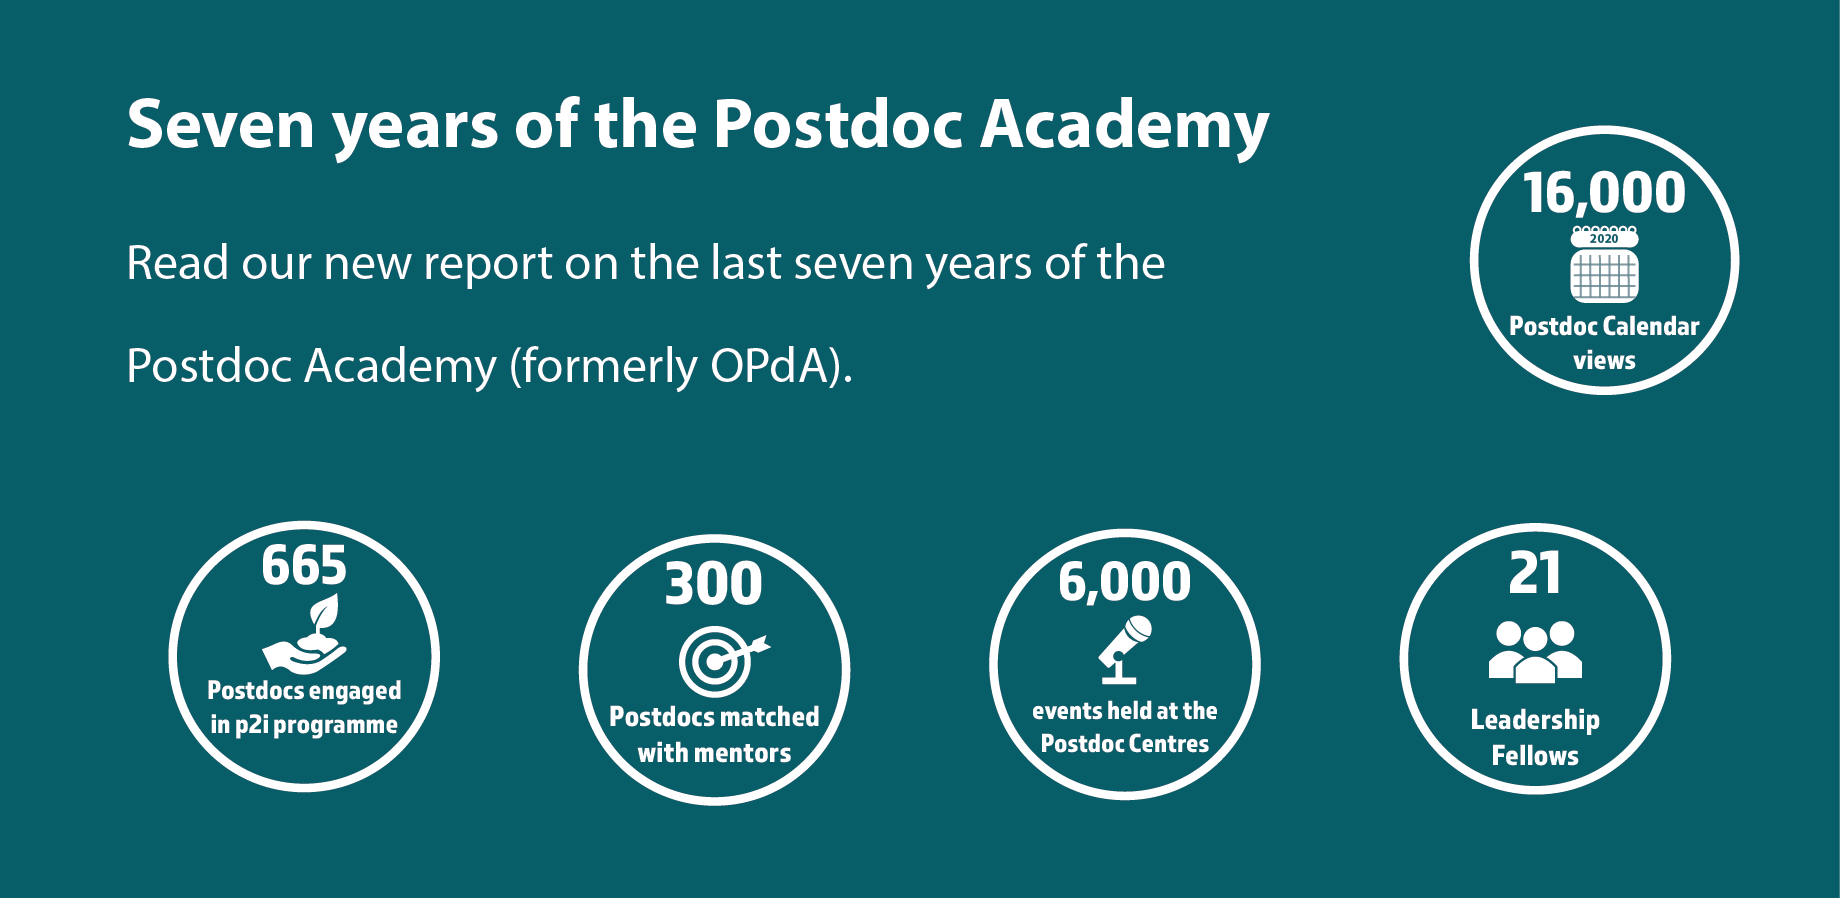 Read our new report on the last seven years of the Postdoc Academy (formerly OPdA)